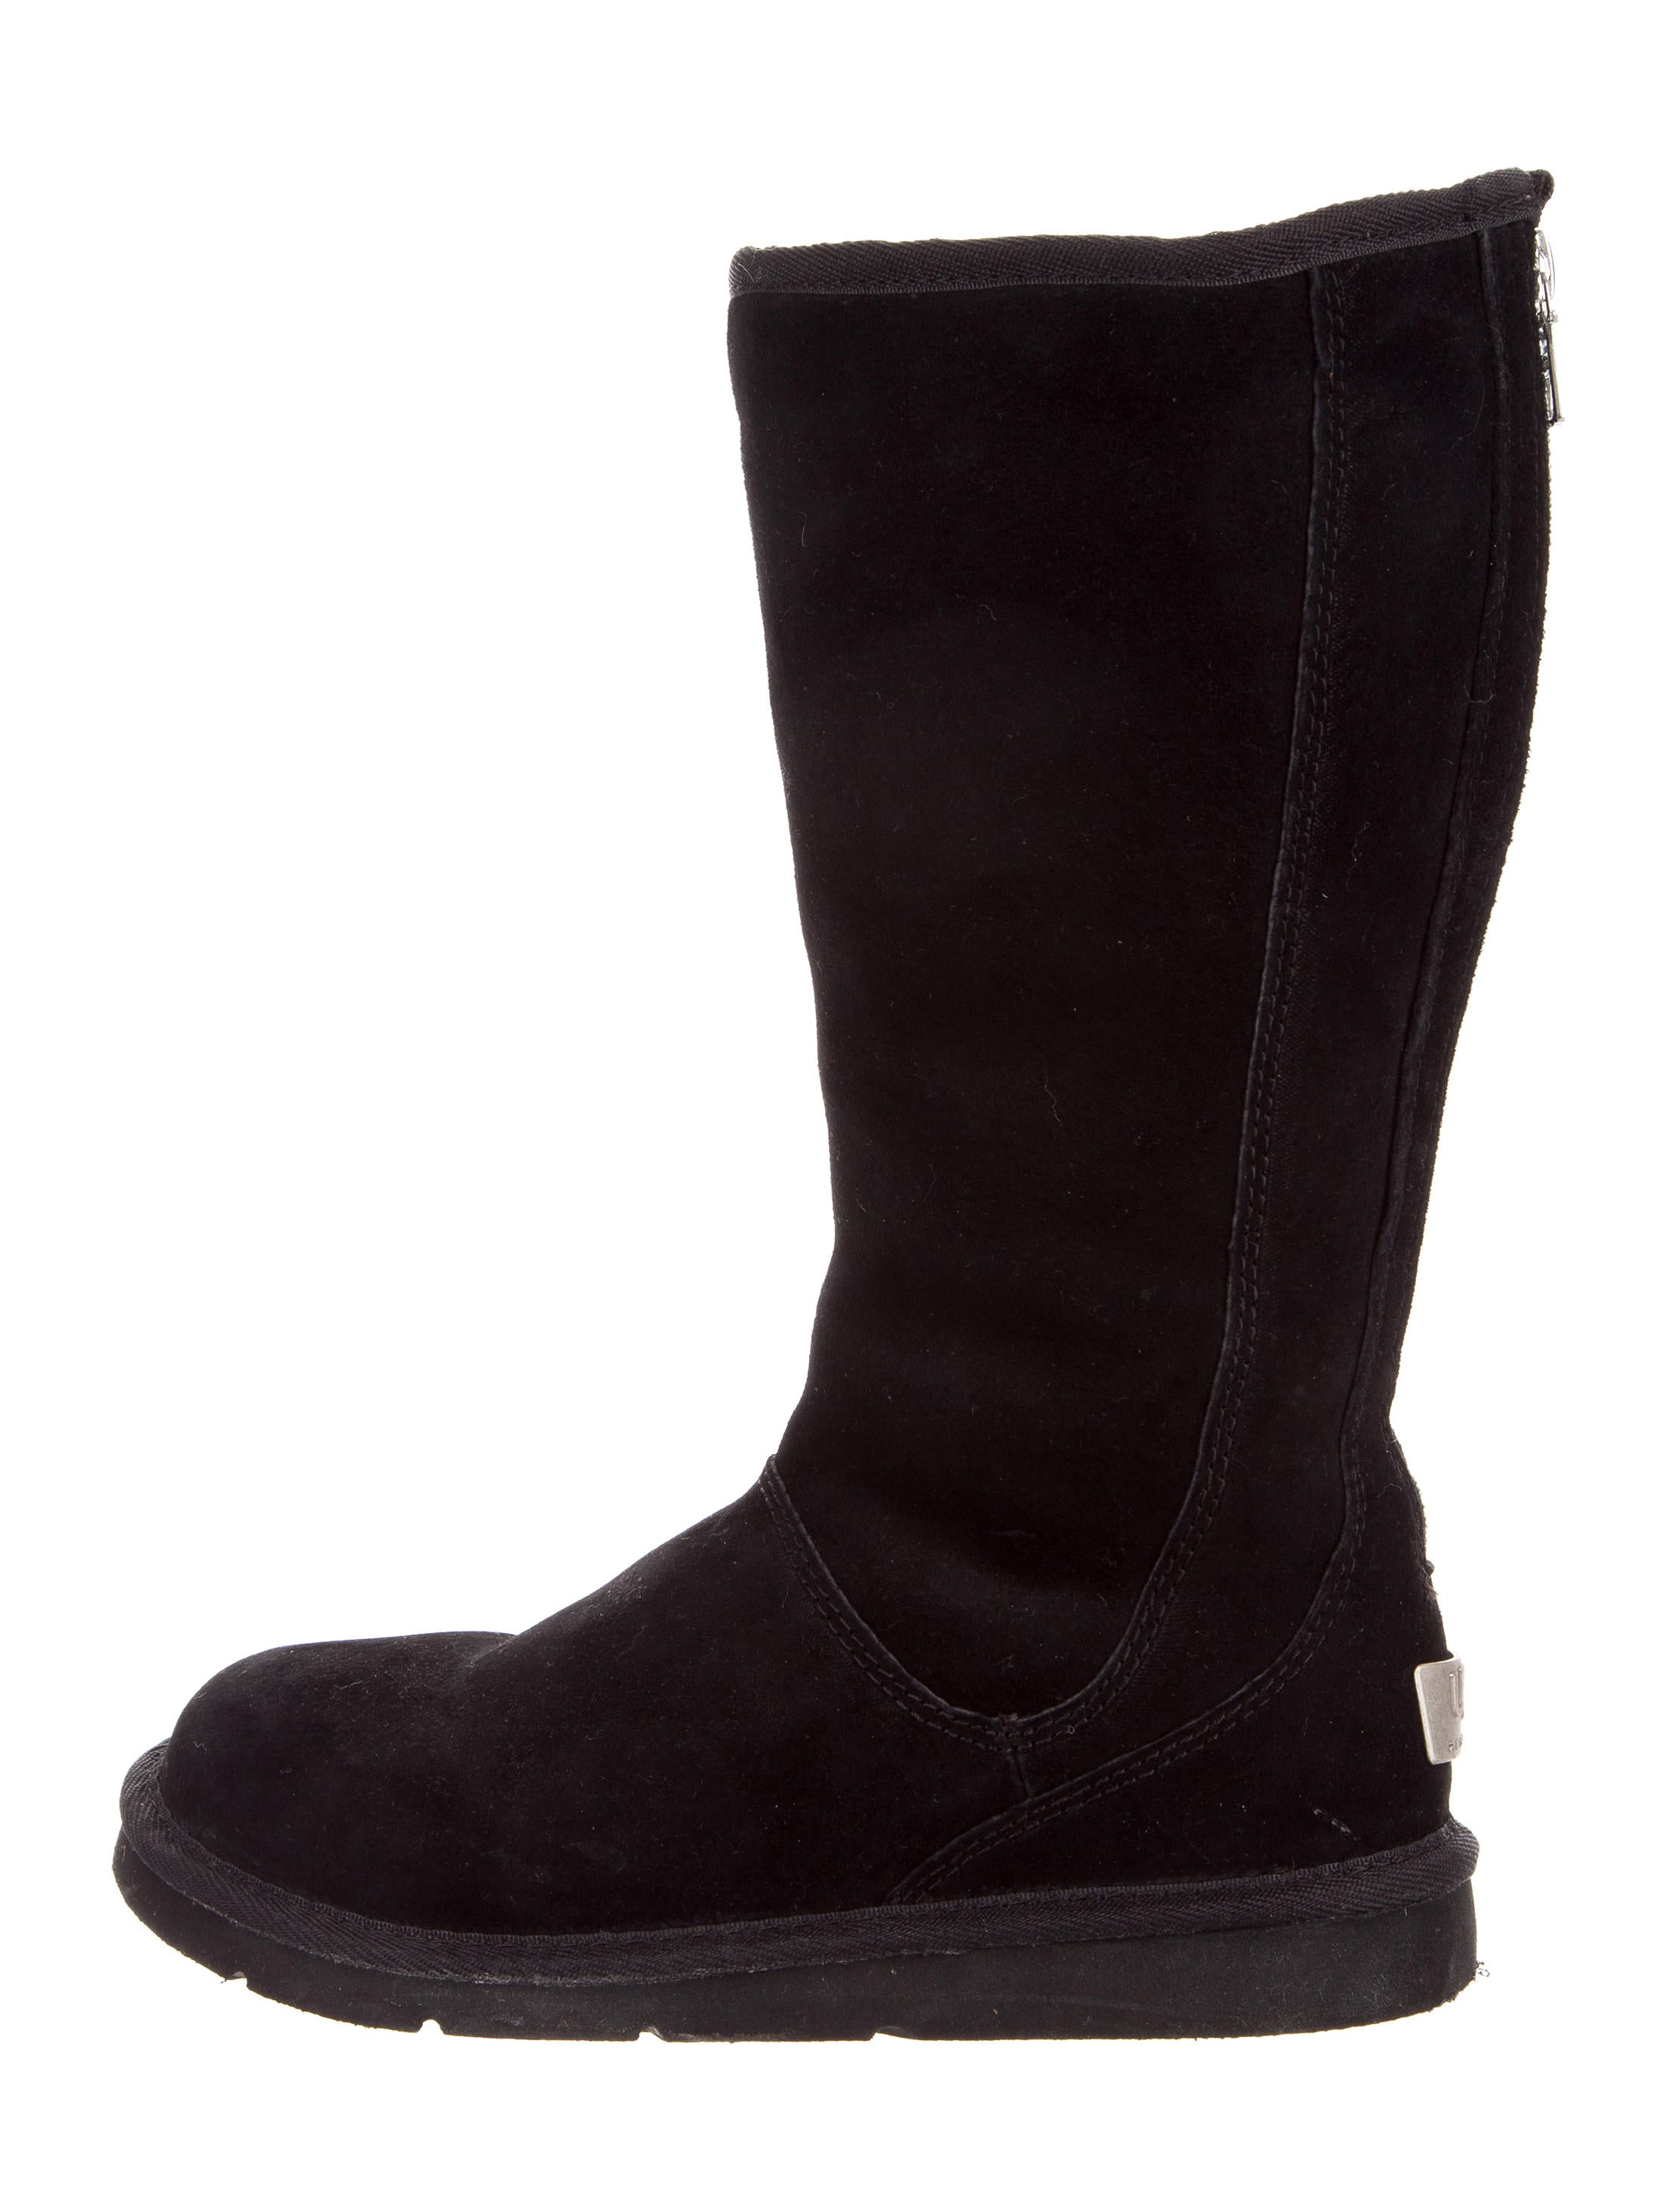 d7ce048adc7 Suede Knightsbridge Boots